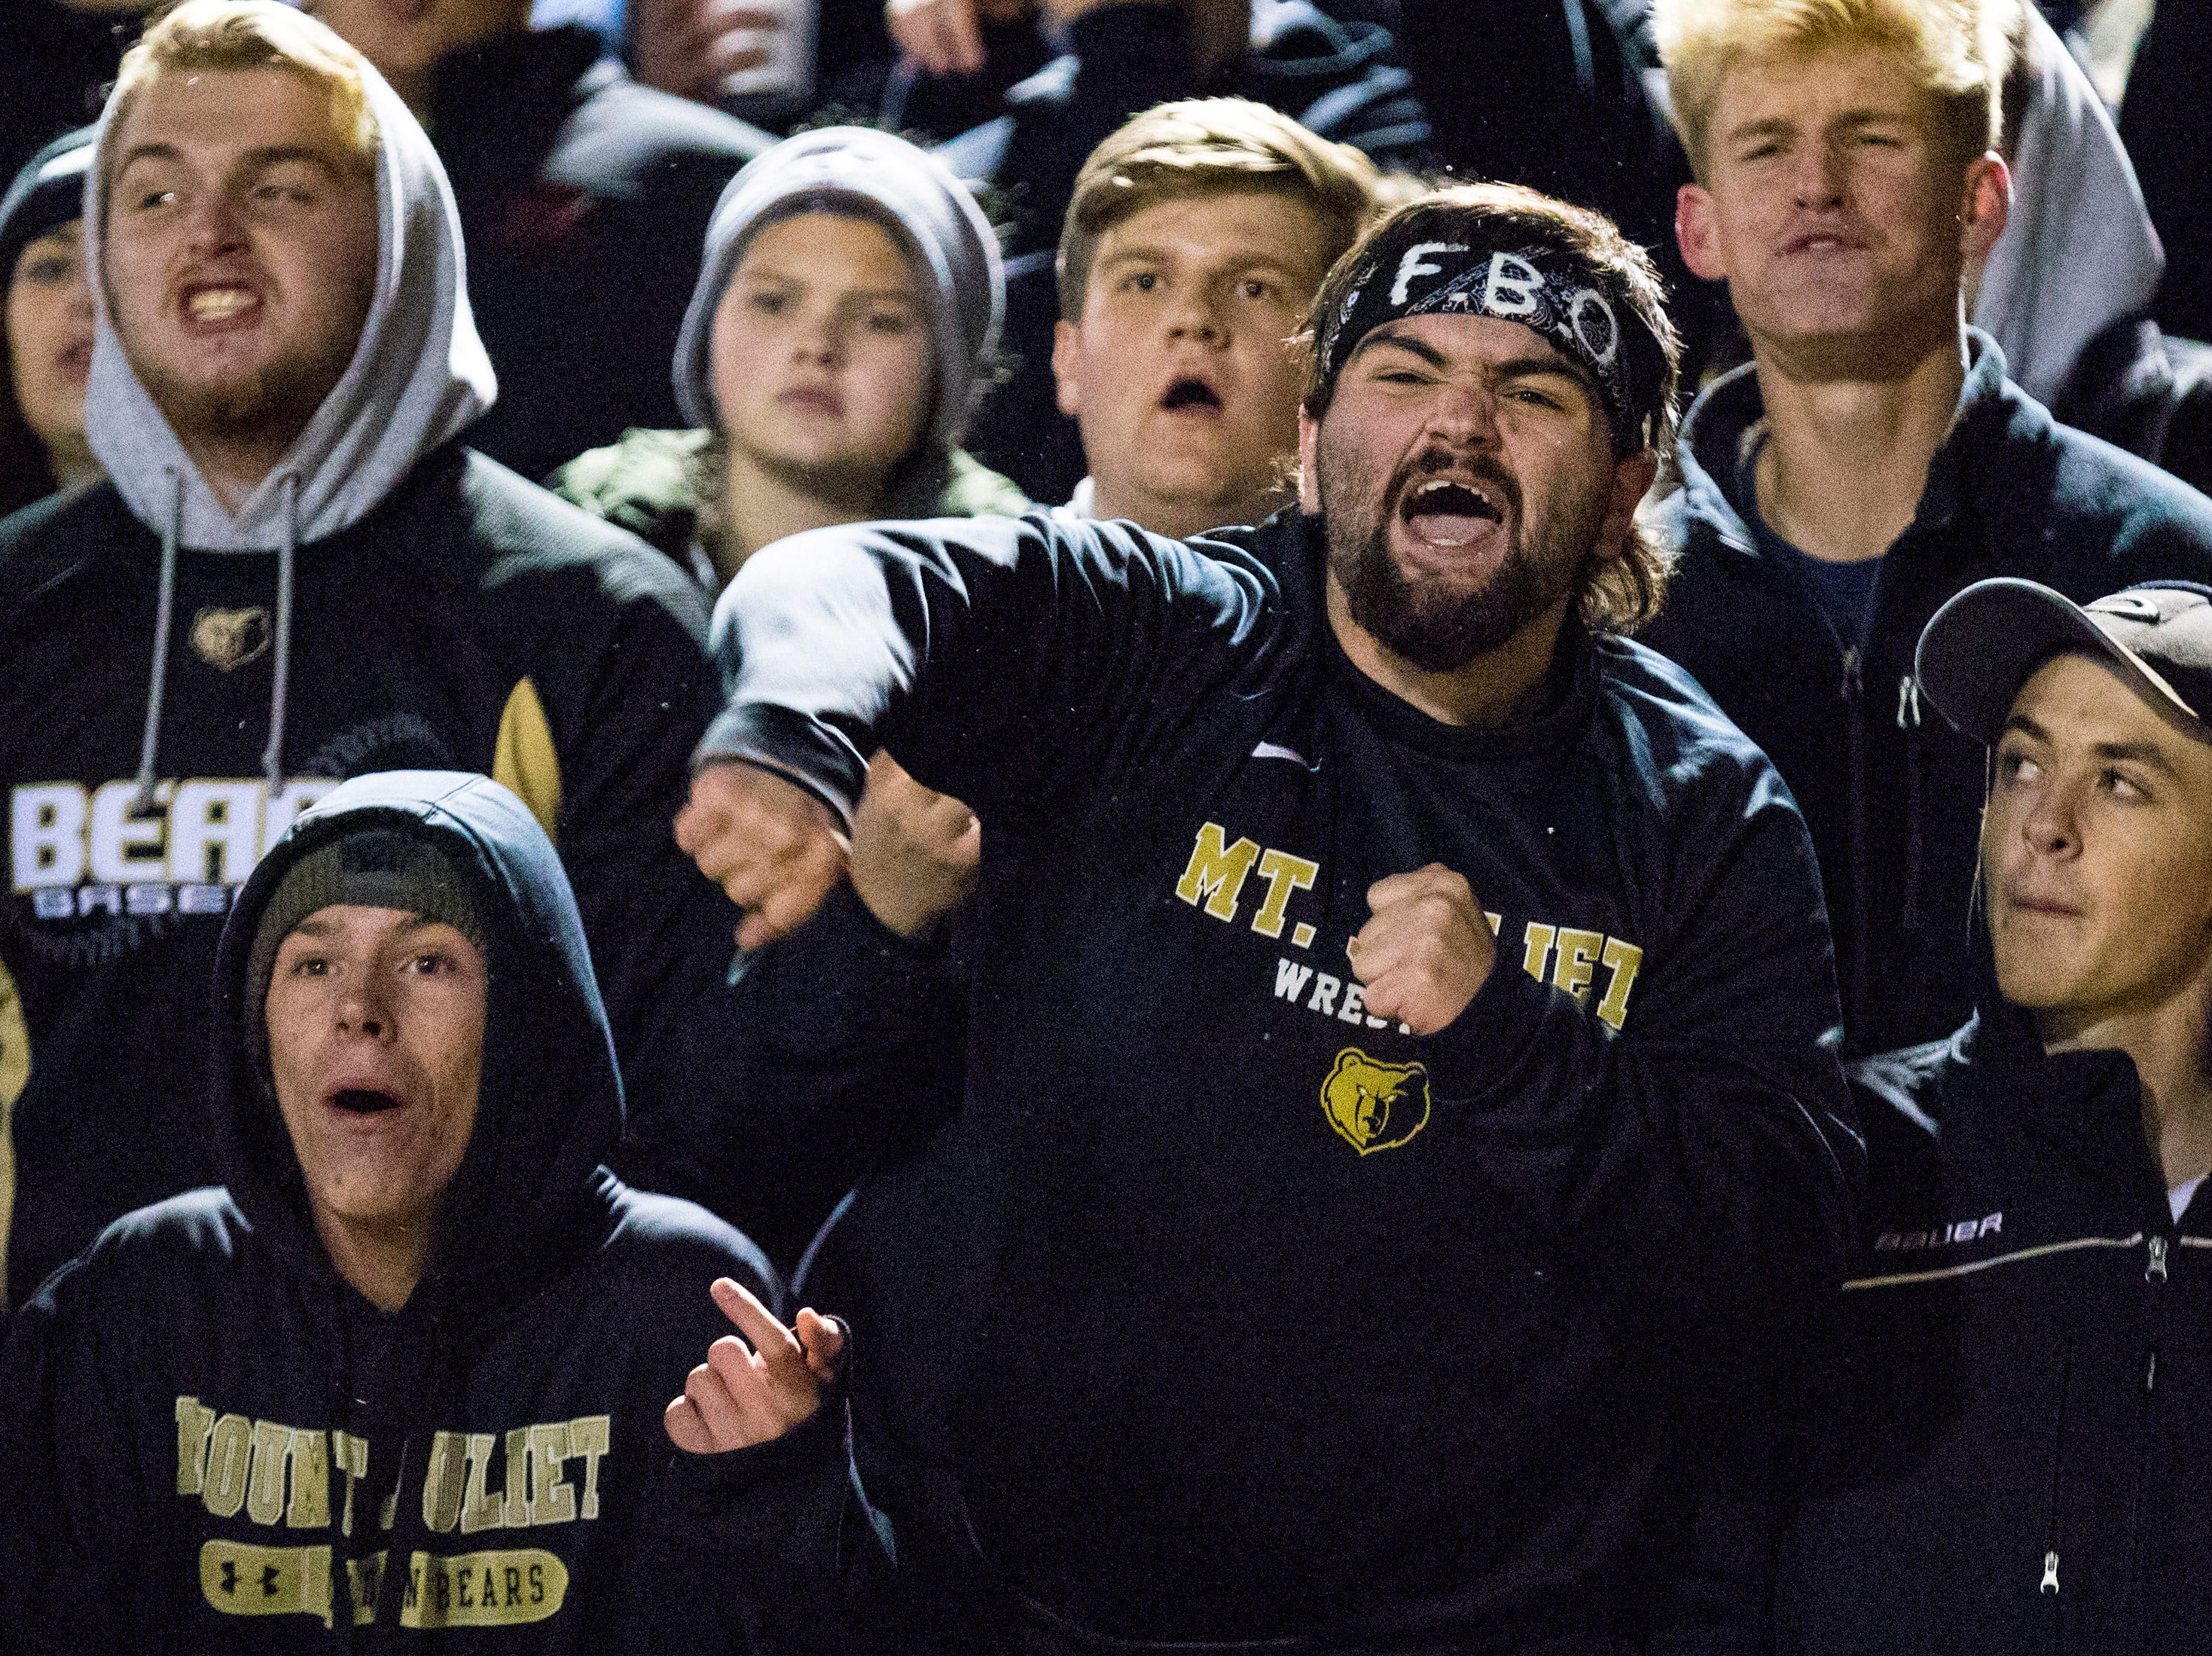 A member of Mt. Juliet's student section argues a call during Mt. Juliet's game against Blackman at Mt. Juliet High School in Mt. Juliet on Friday, Nov. 9, 2018.